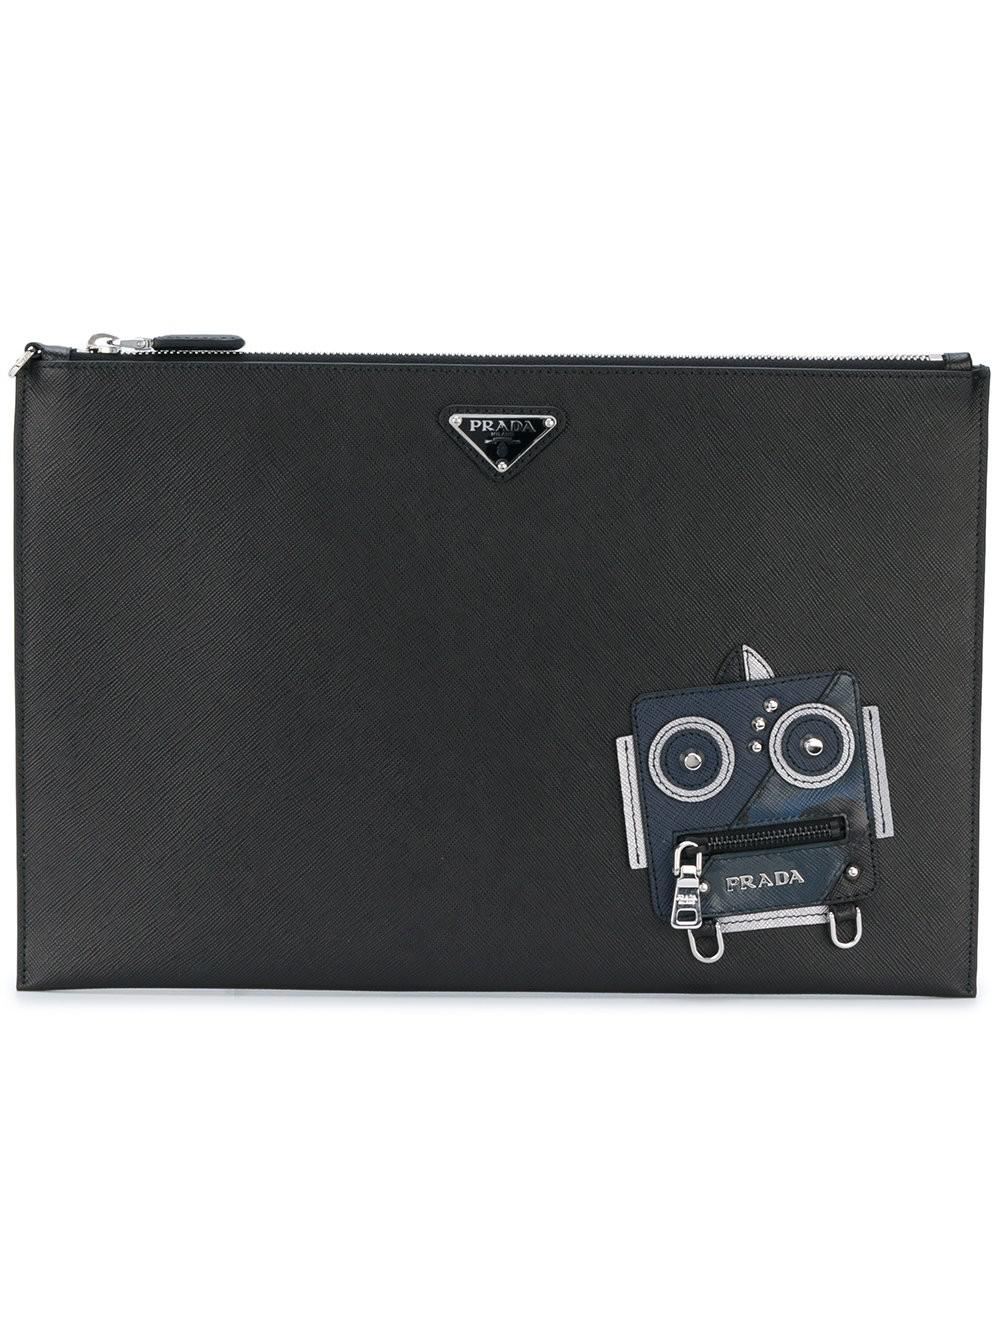 d7bedaafb717 Lyst - Prada Robot Saffiano Clutch Bag in Black for Men